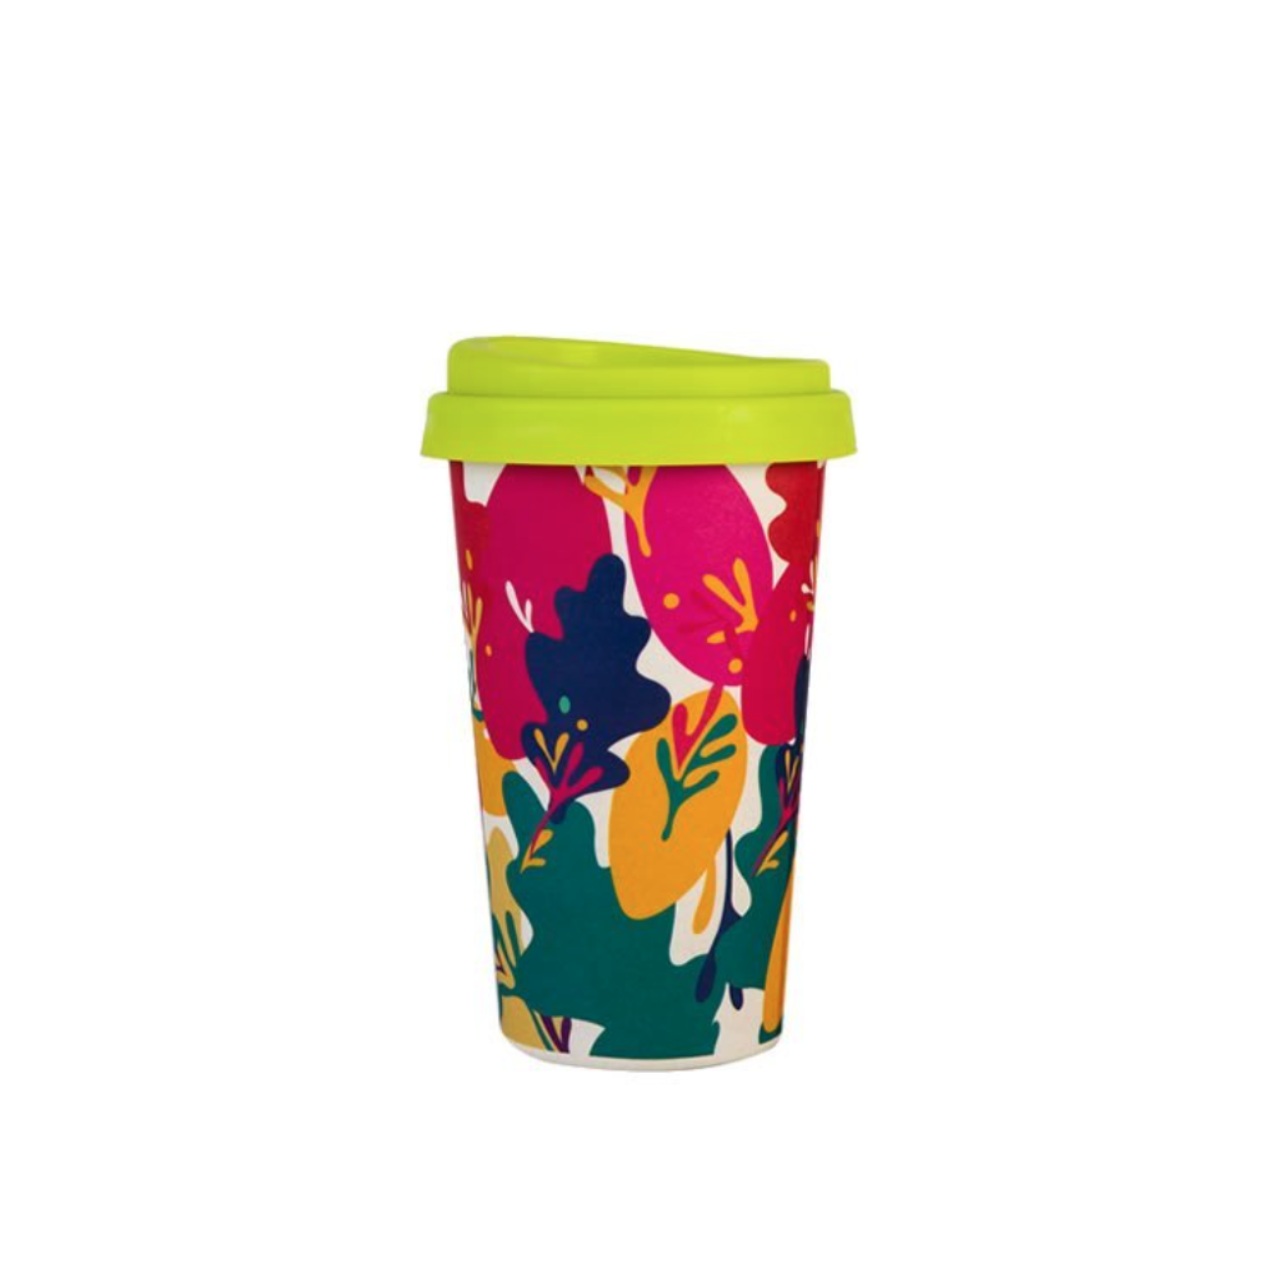 Innovative Reusable Bamboo Fiber Coffee Cup